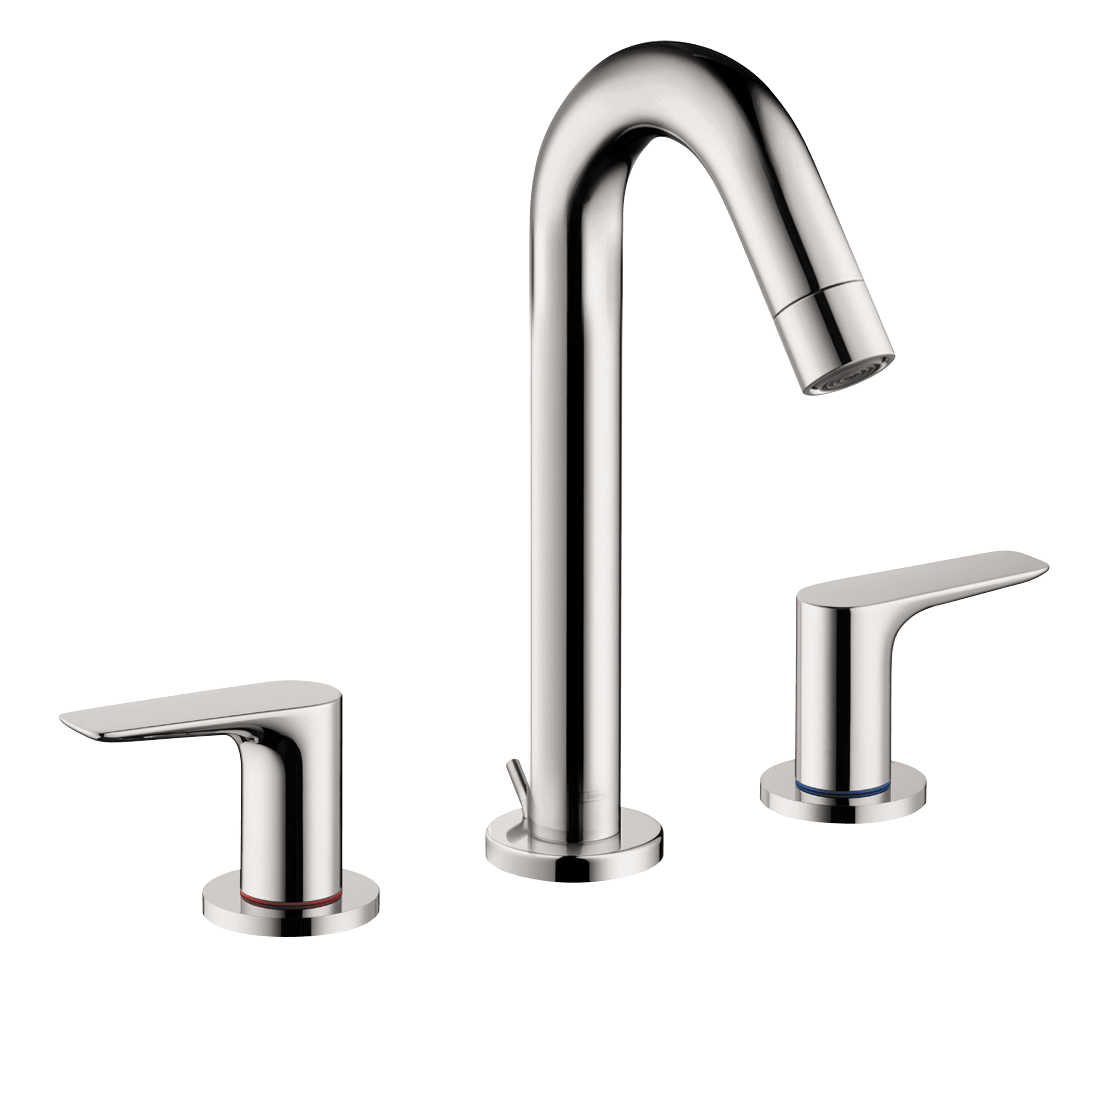 Hansgrohe Faucets & Showers | QualityBath.com